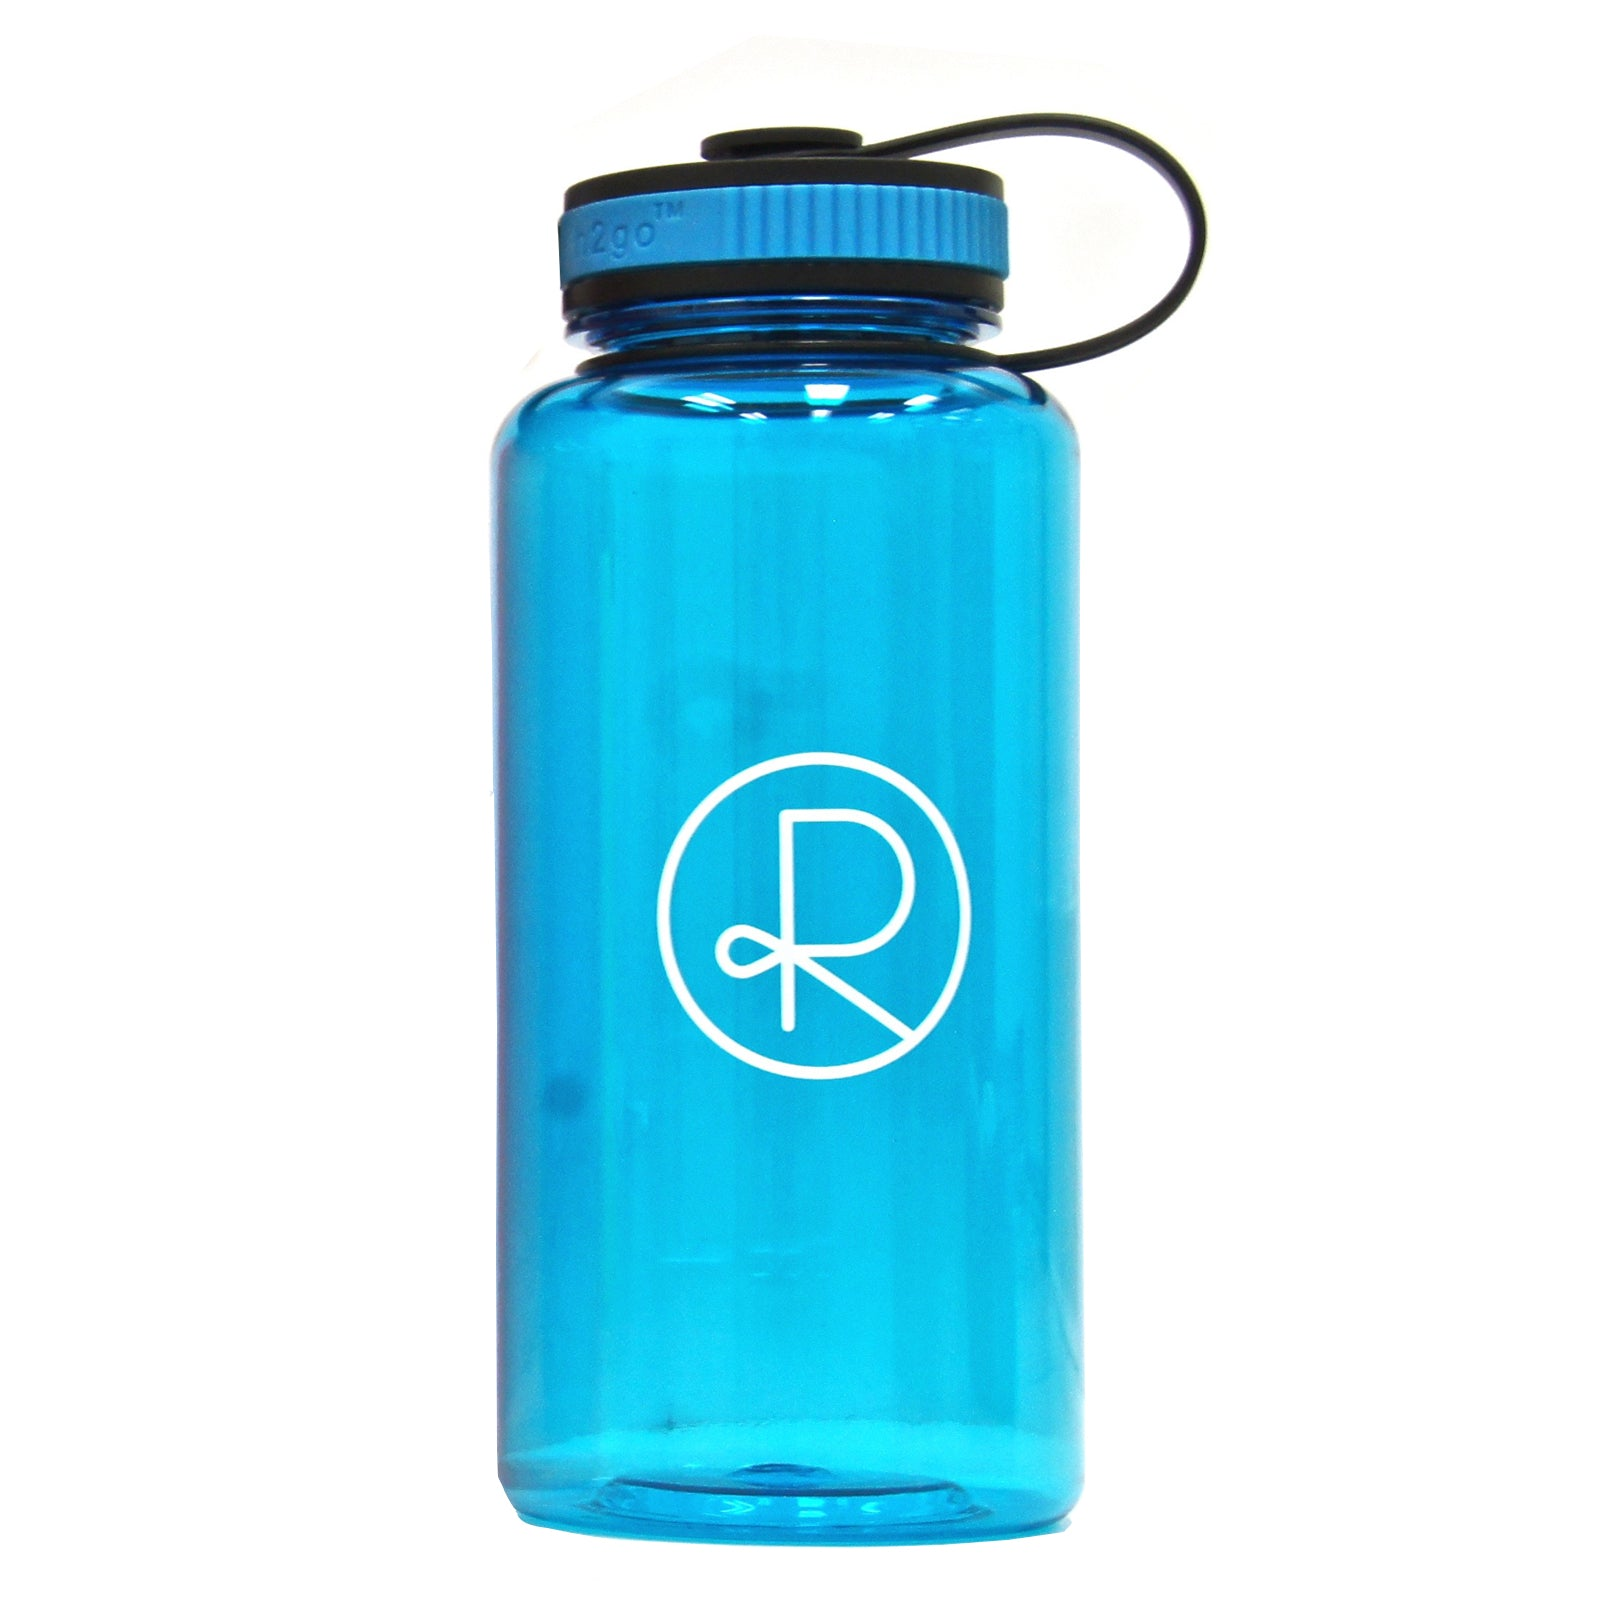 Reborn Coffee h2go Wide Water Bottle. 34 oz. Single Wall Tritan Copolyester Bottle with Threaded Lid. Patent Pending for Cold Beverage. color: BLUE